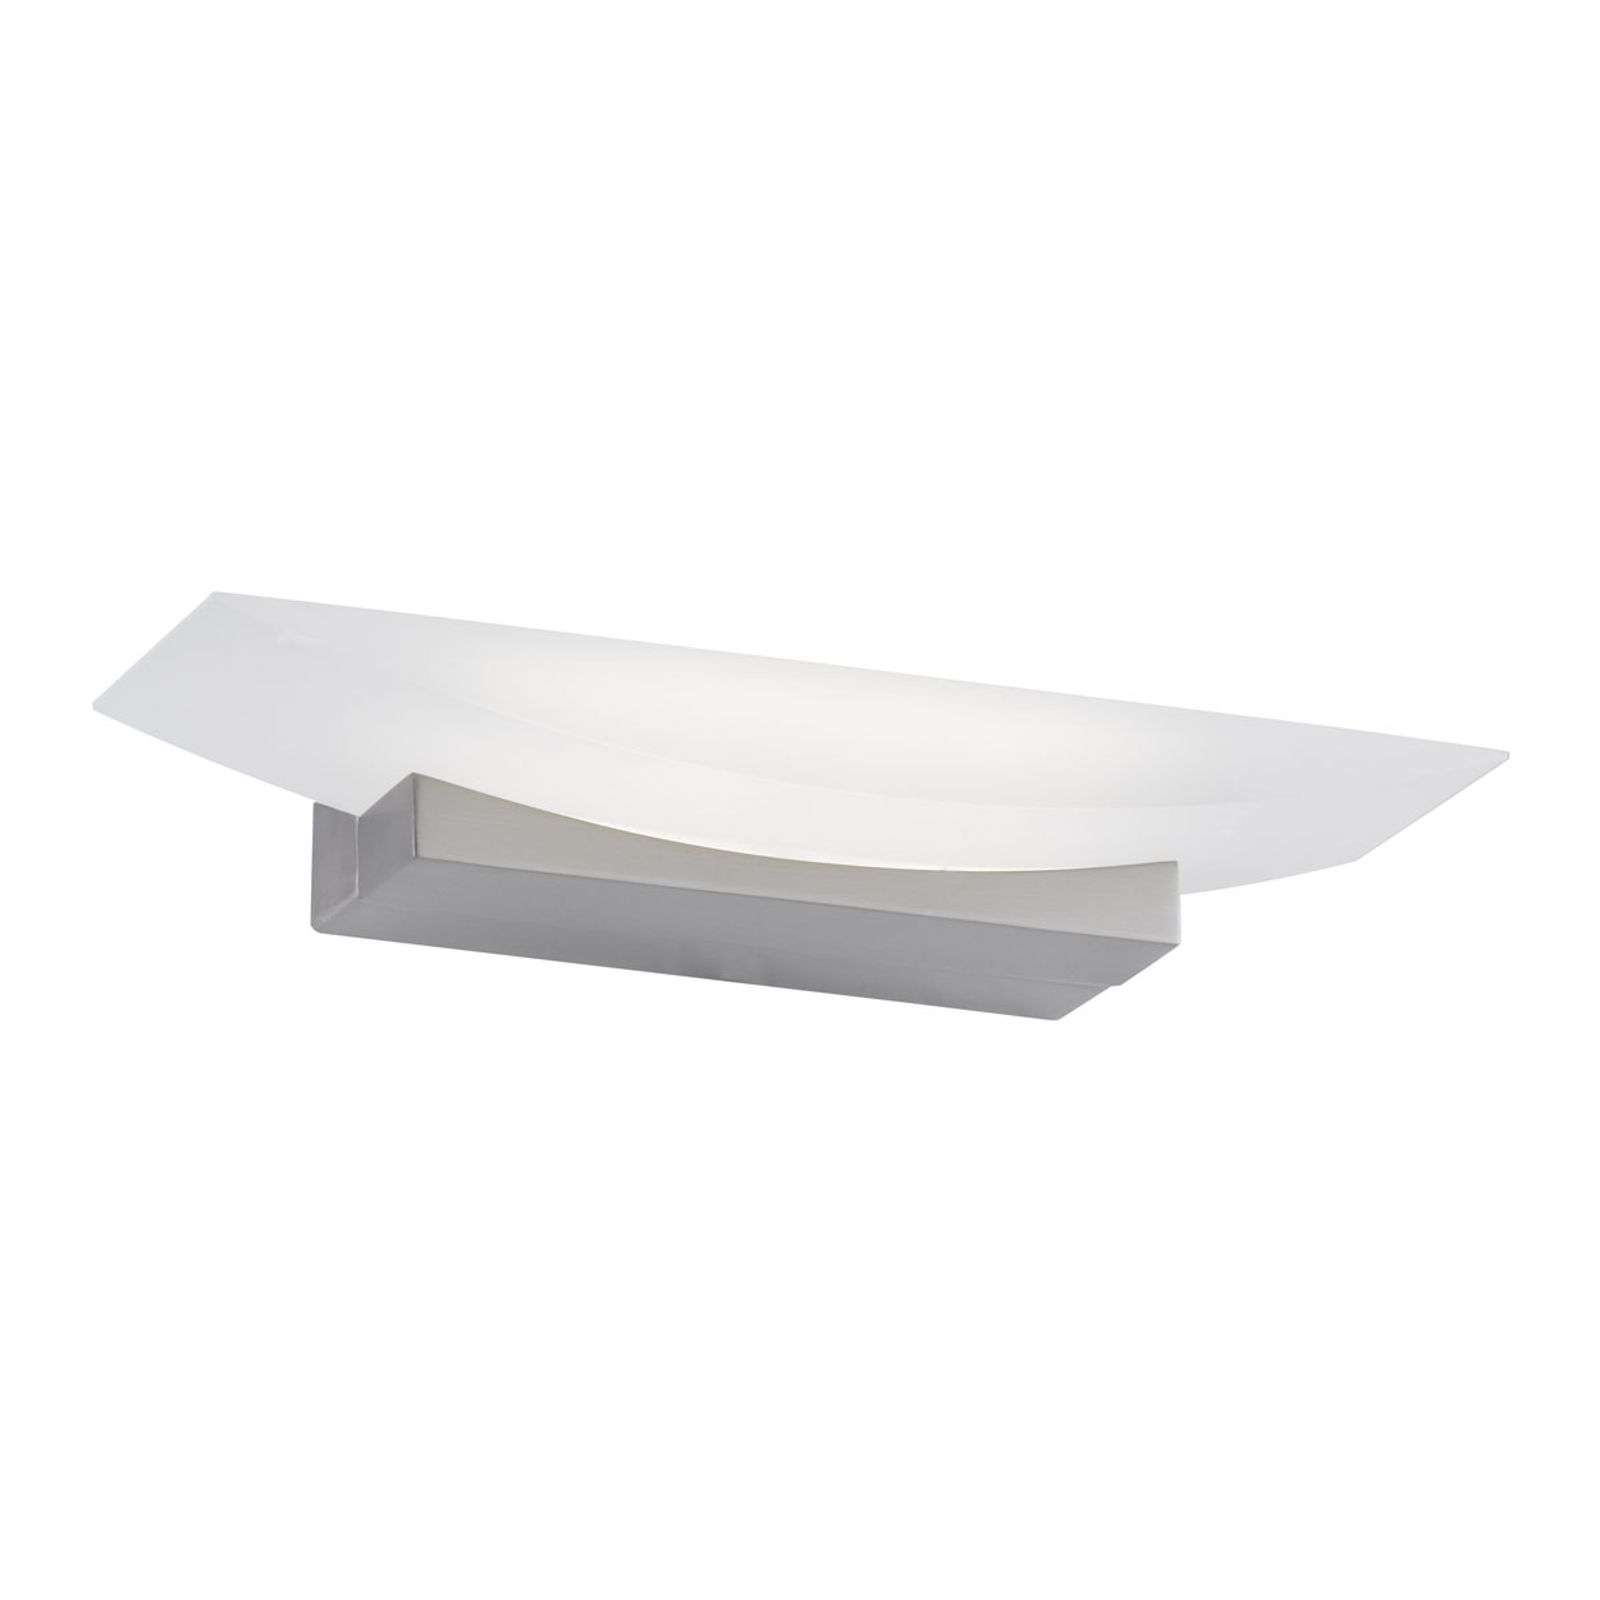 Applique LED Bowl con interruttore, 30 cm